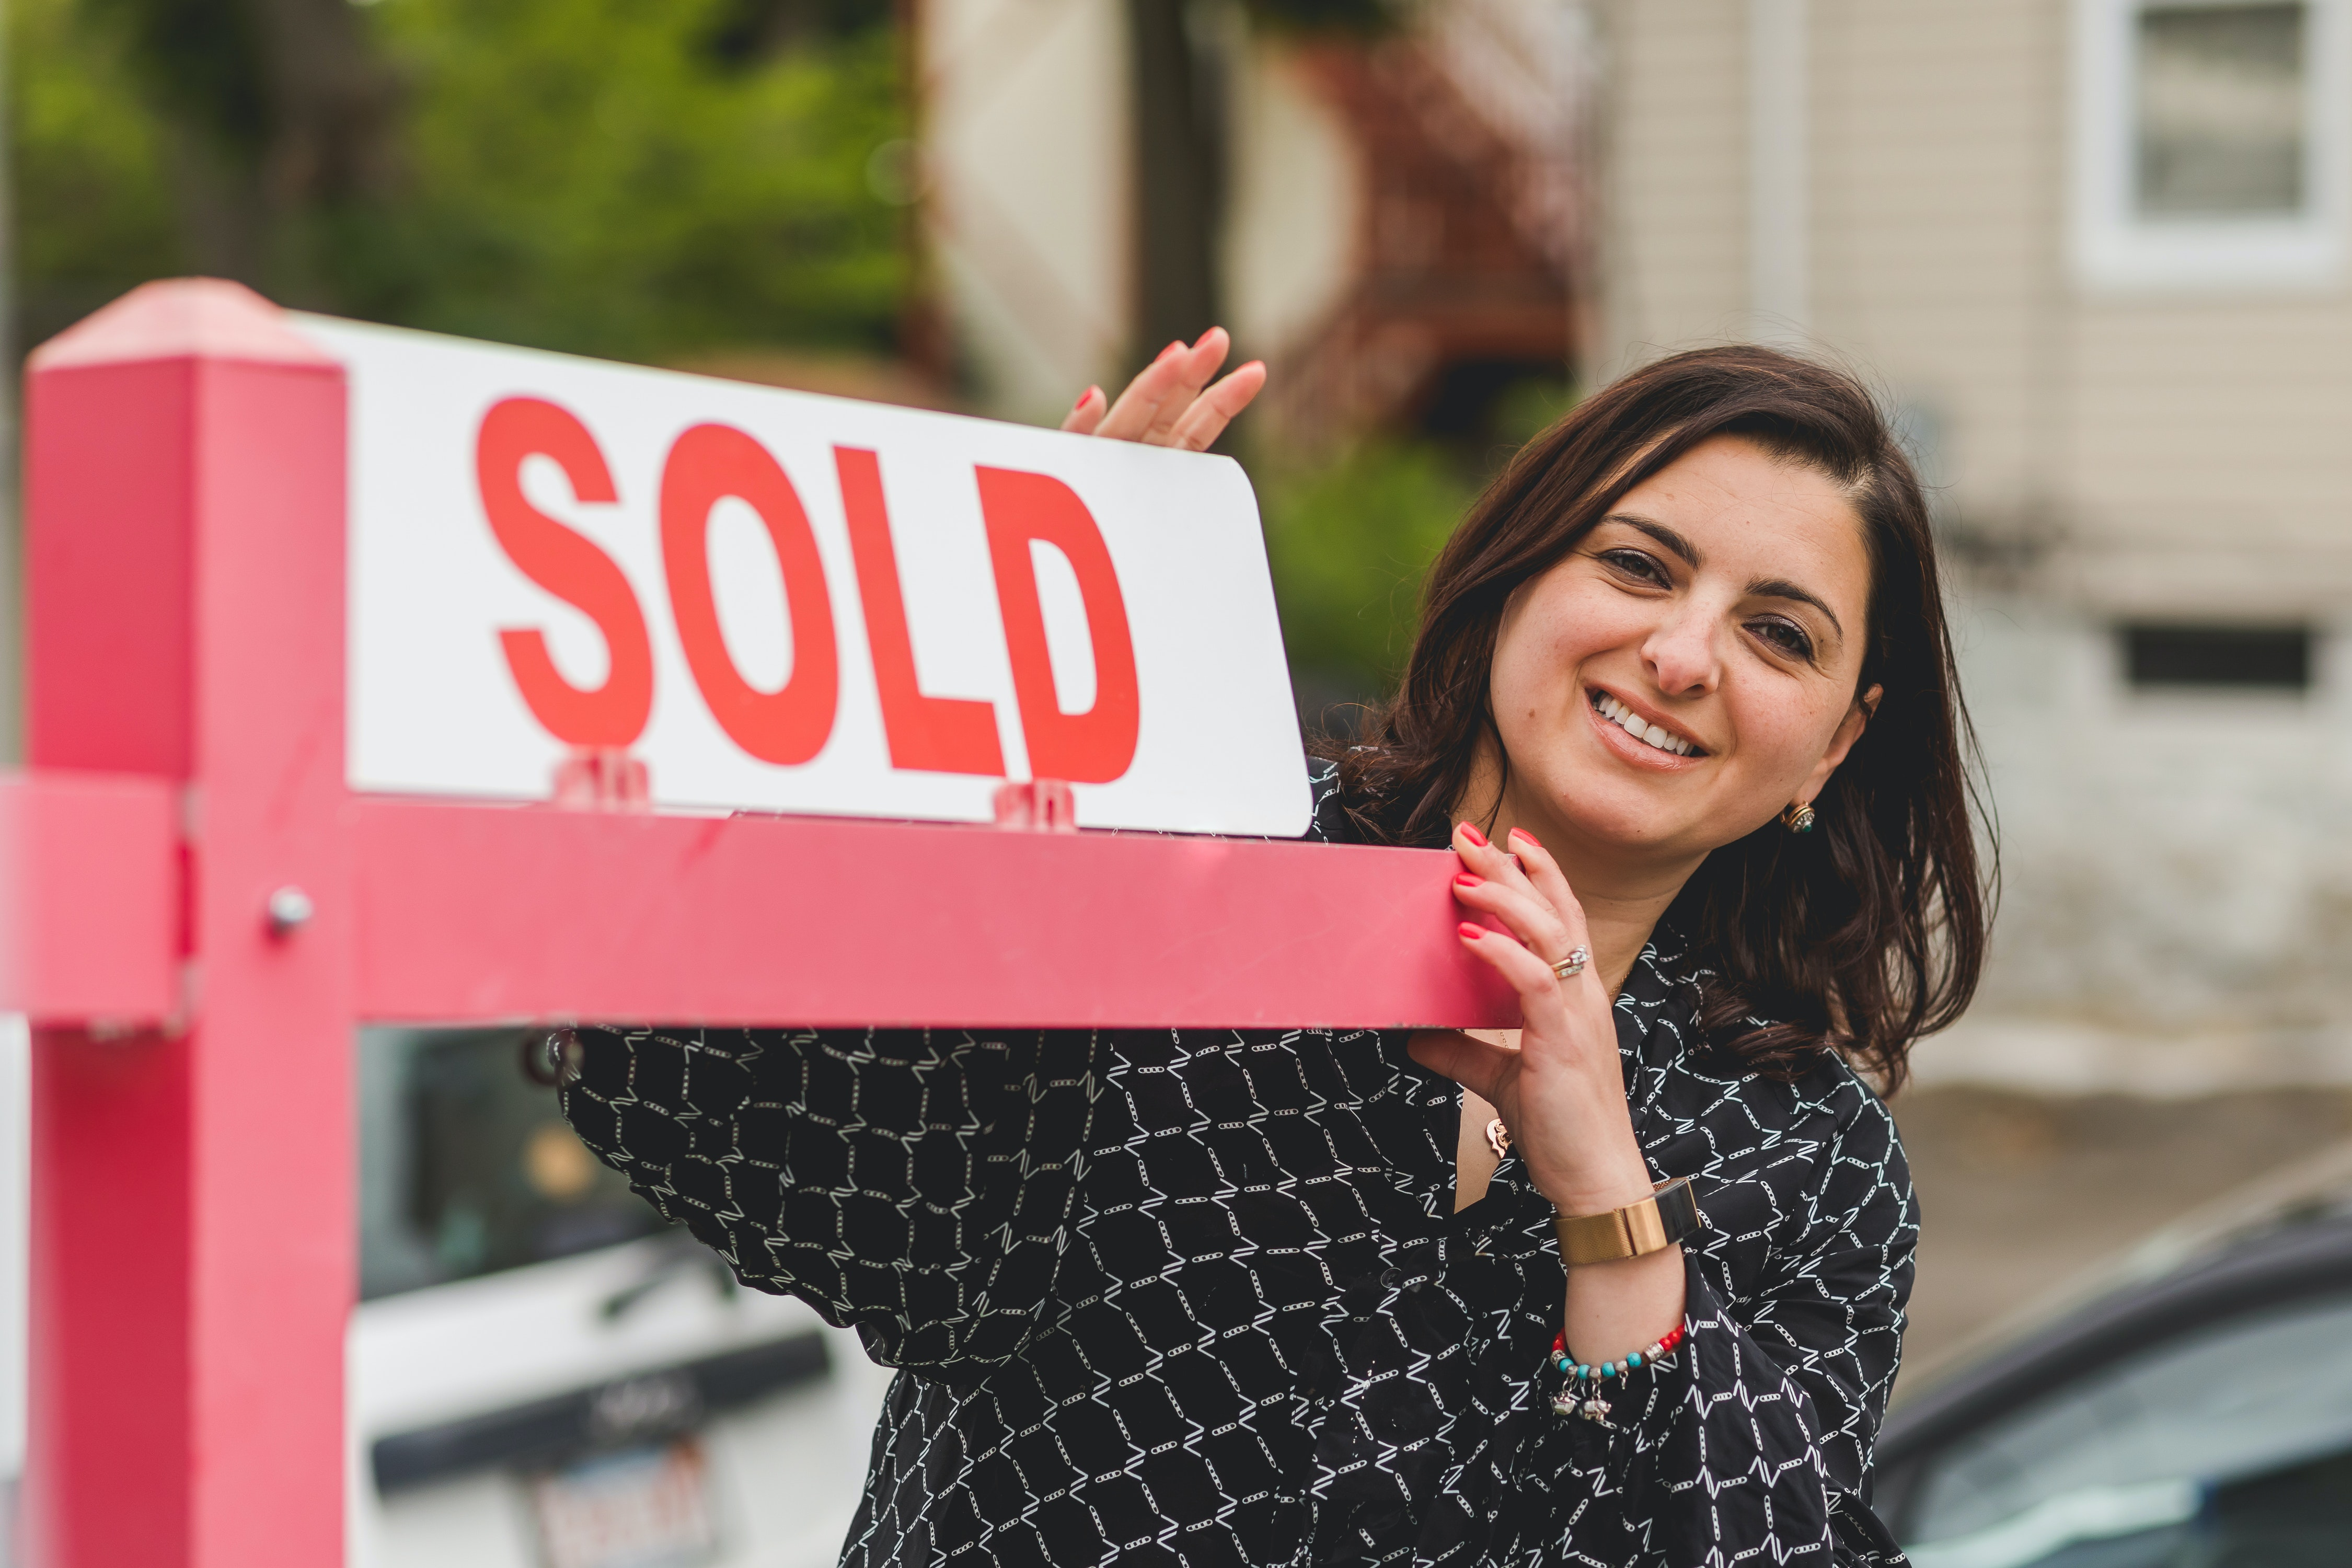 Realtor With Sold Sign